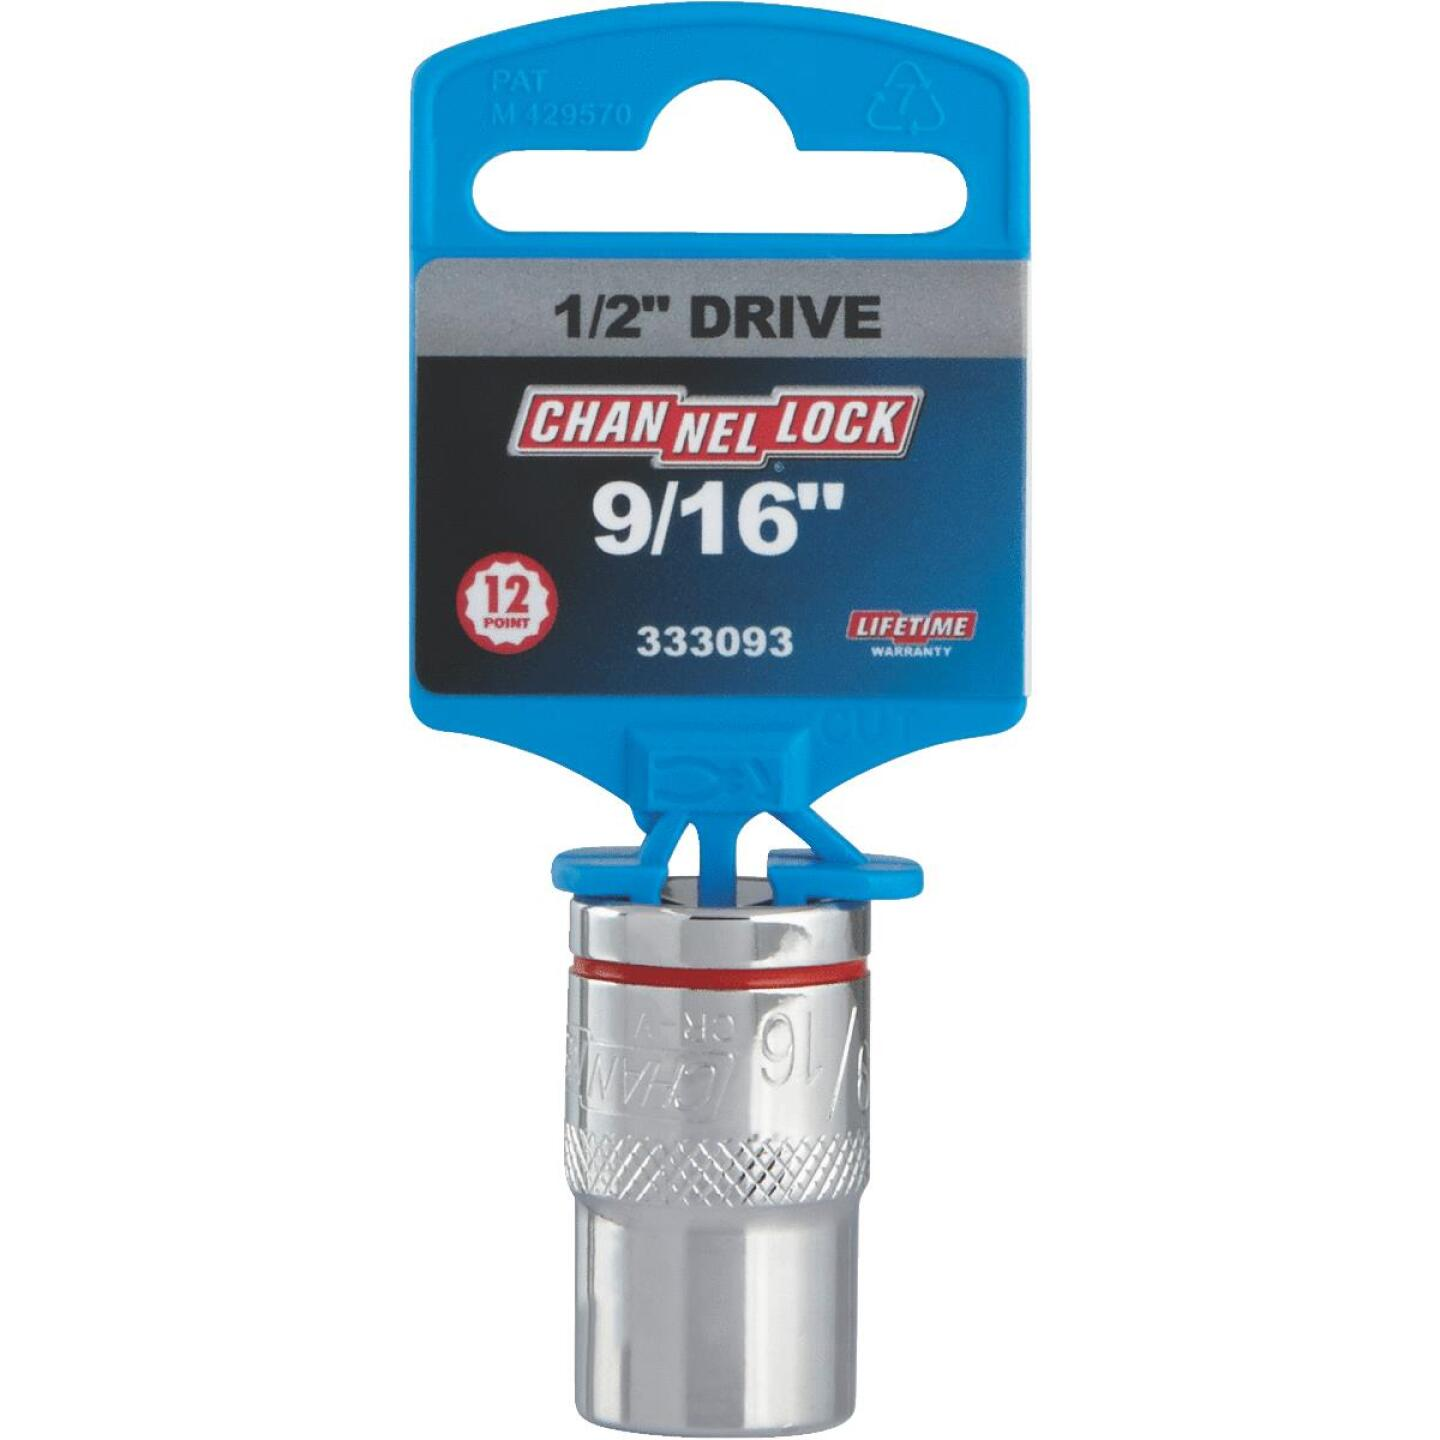 Channellock 1/2 In. Drive 9/16 In. 12-Point Shallow Standard Socket Image 2